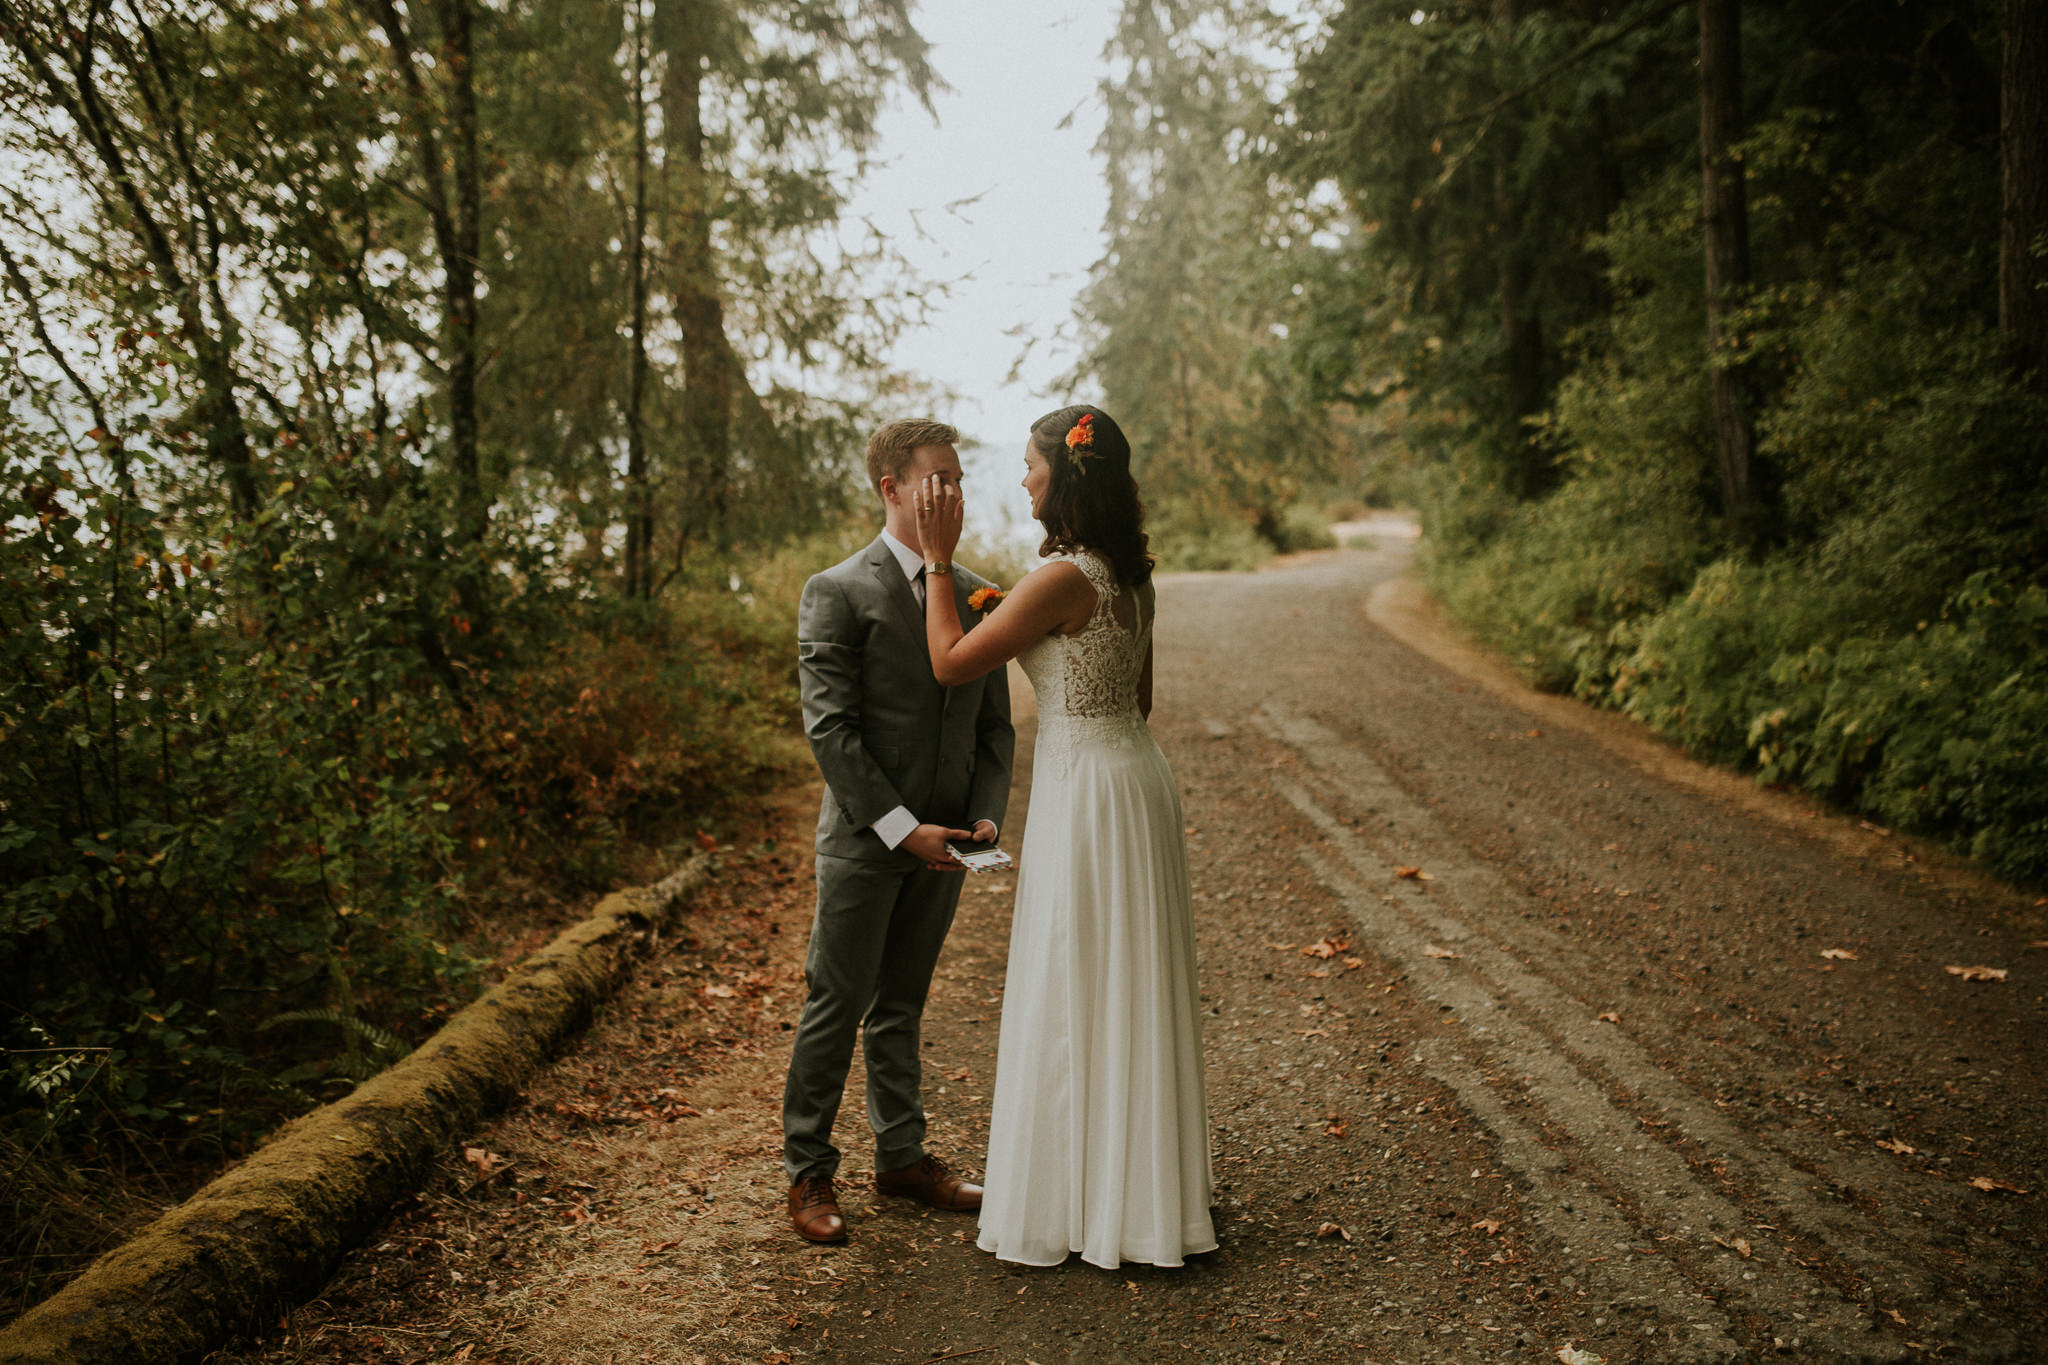 Port-Orchard-Manchester-Park-elopement-Bride-And-Groom-15.jpg